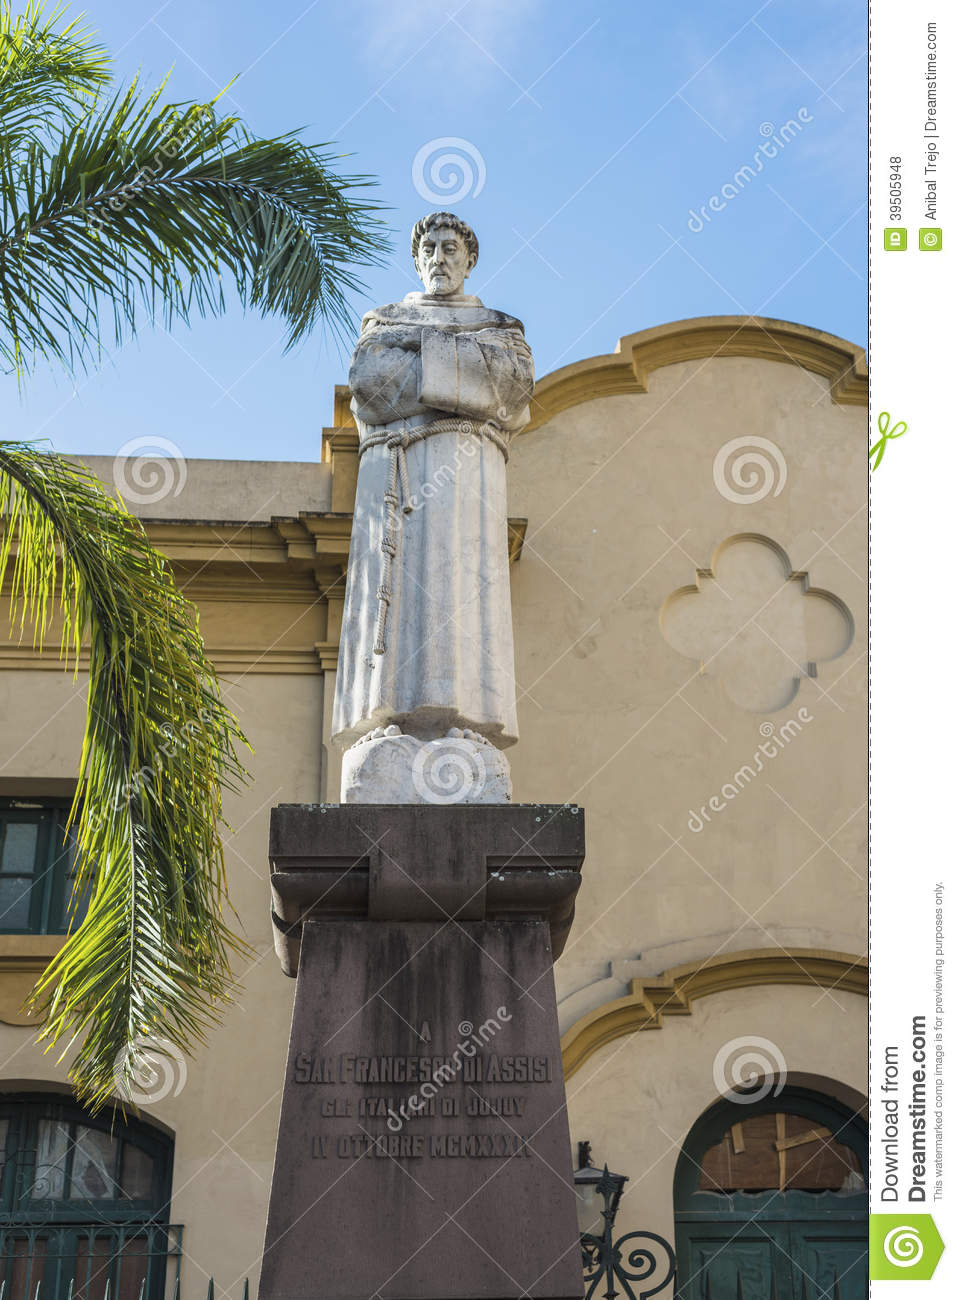 St. Francis of Assisi statue in Jujuy, Argentina.